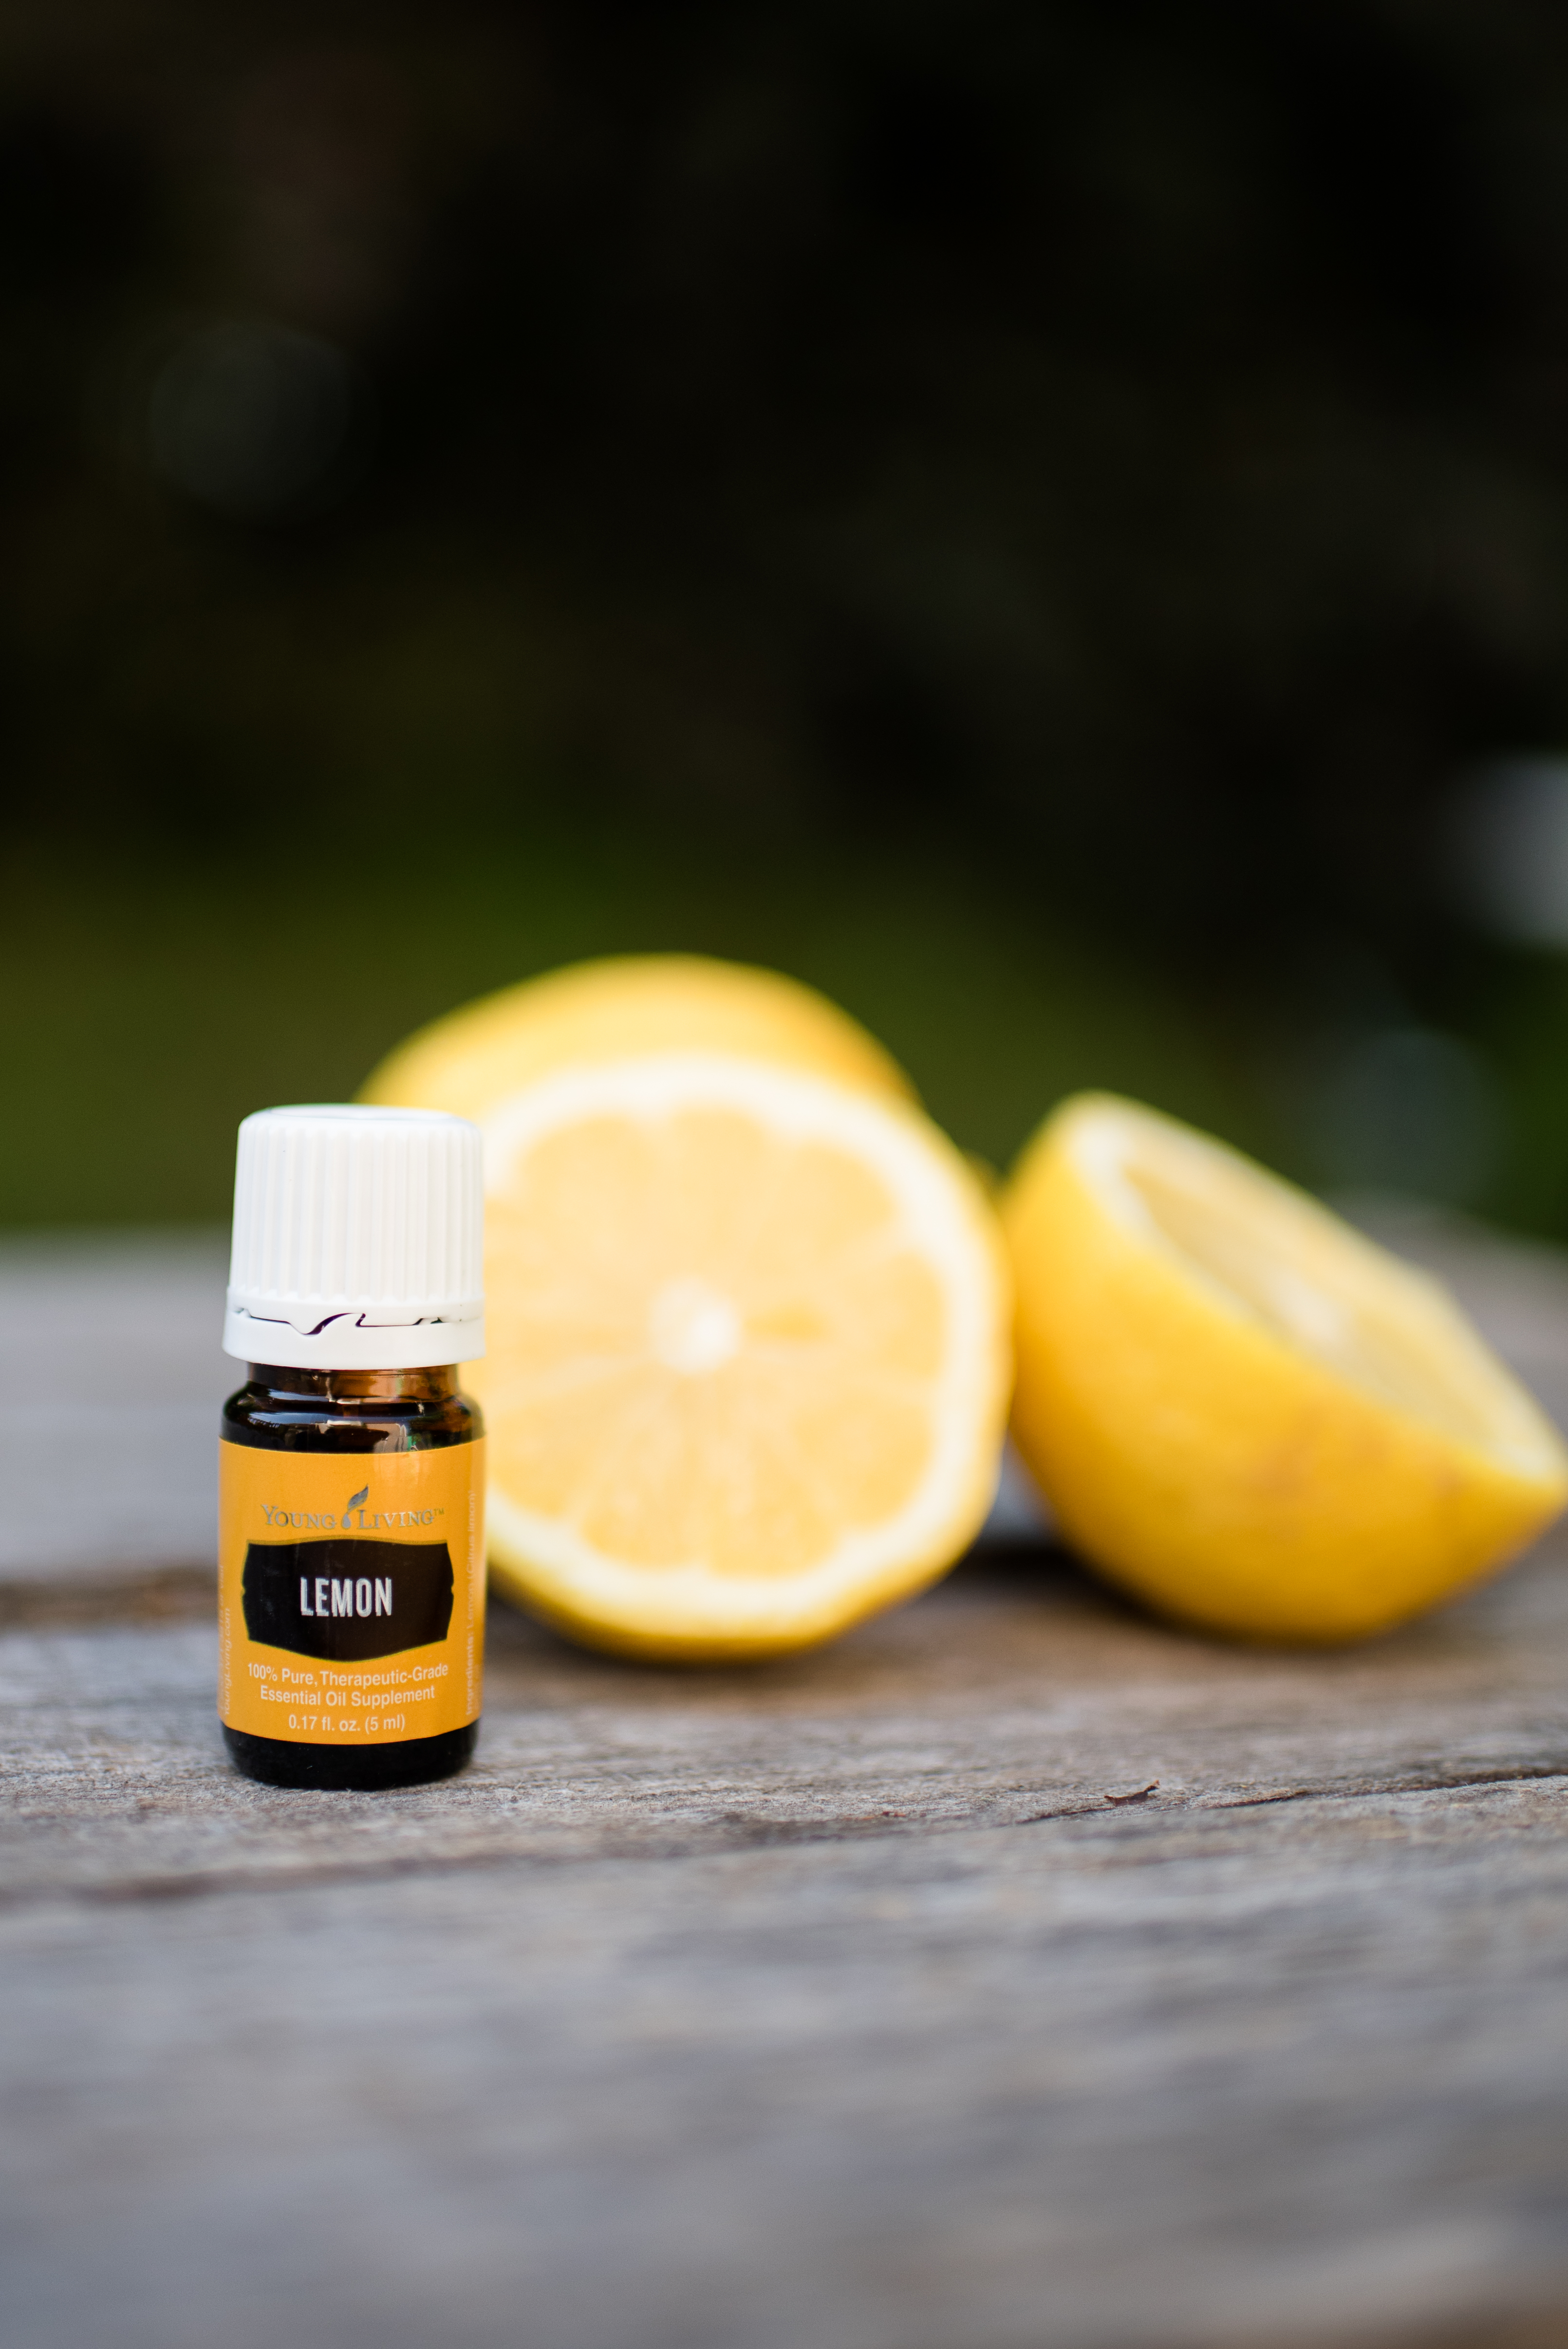 Trying to find more ways to use your essential oils? This blogger has 30 Essential Oil Life Hacks to make your life easier! I love this whole list!